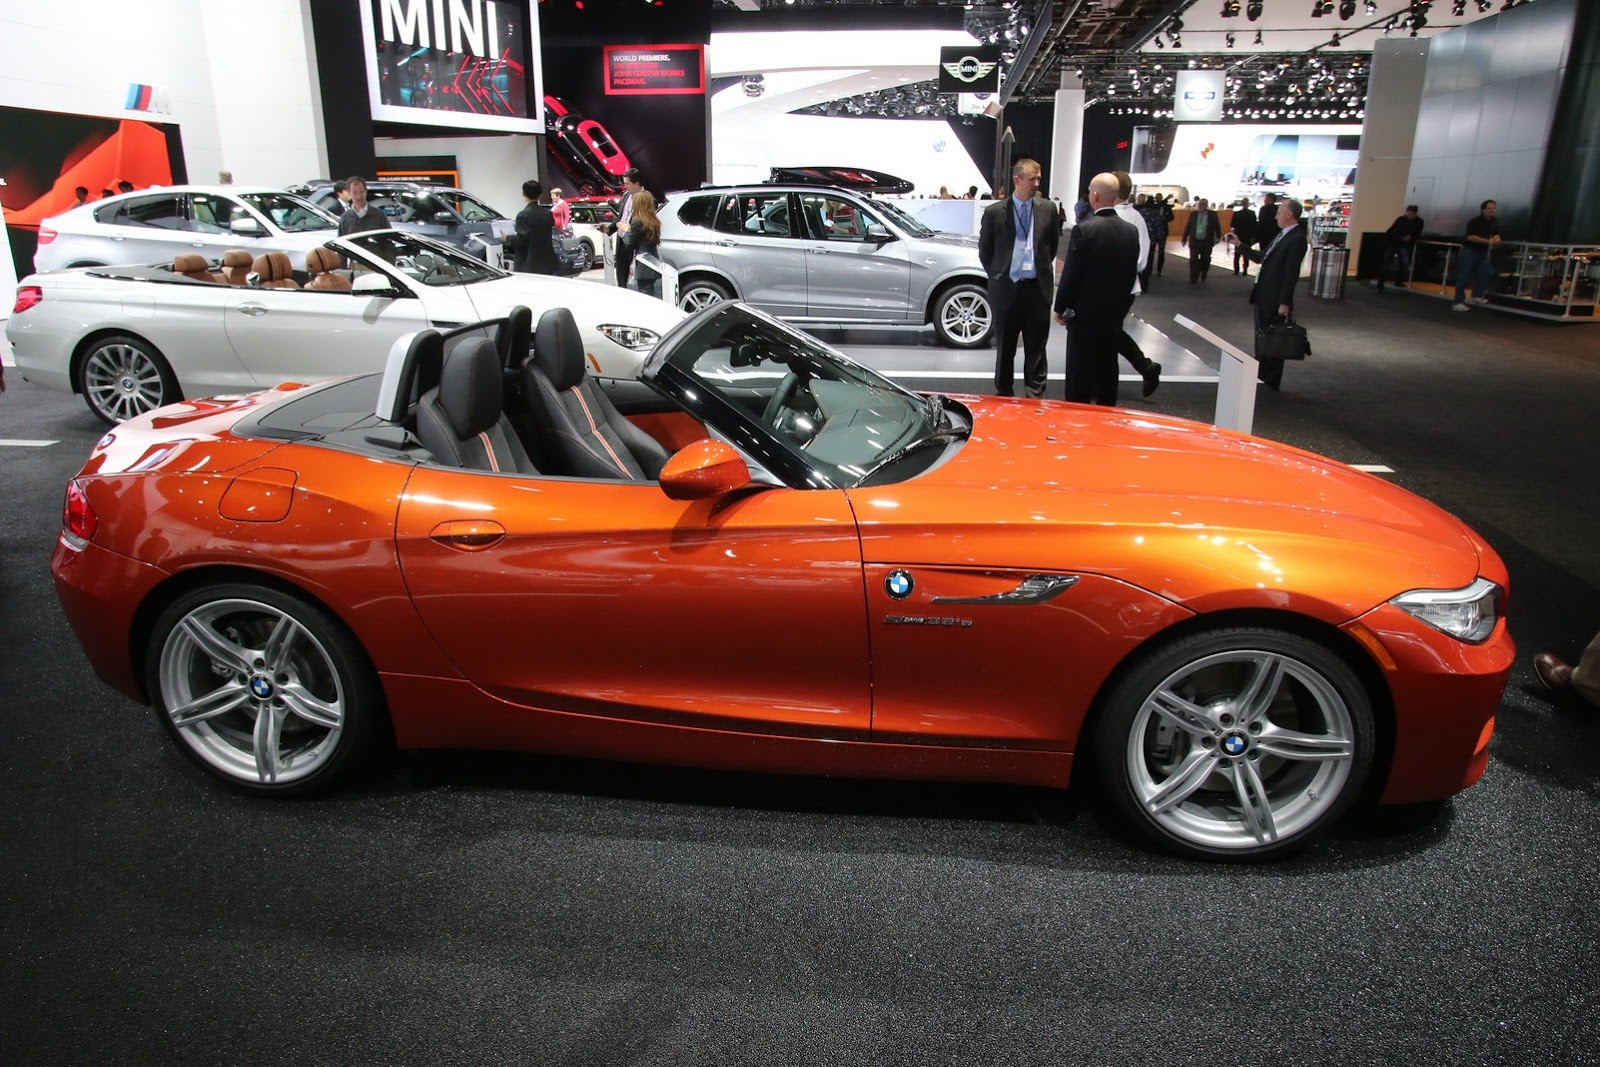 2014 bmw z4 facelift at the detroit autoshow town country bmw alloys and in the interior deep gloss black surrounds for the air vents and the idrive display have a look at the gallery and video after the jump sciox Choice Image